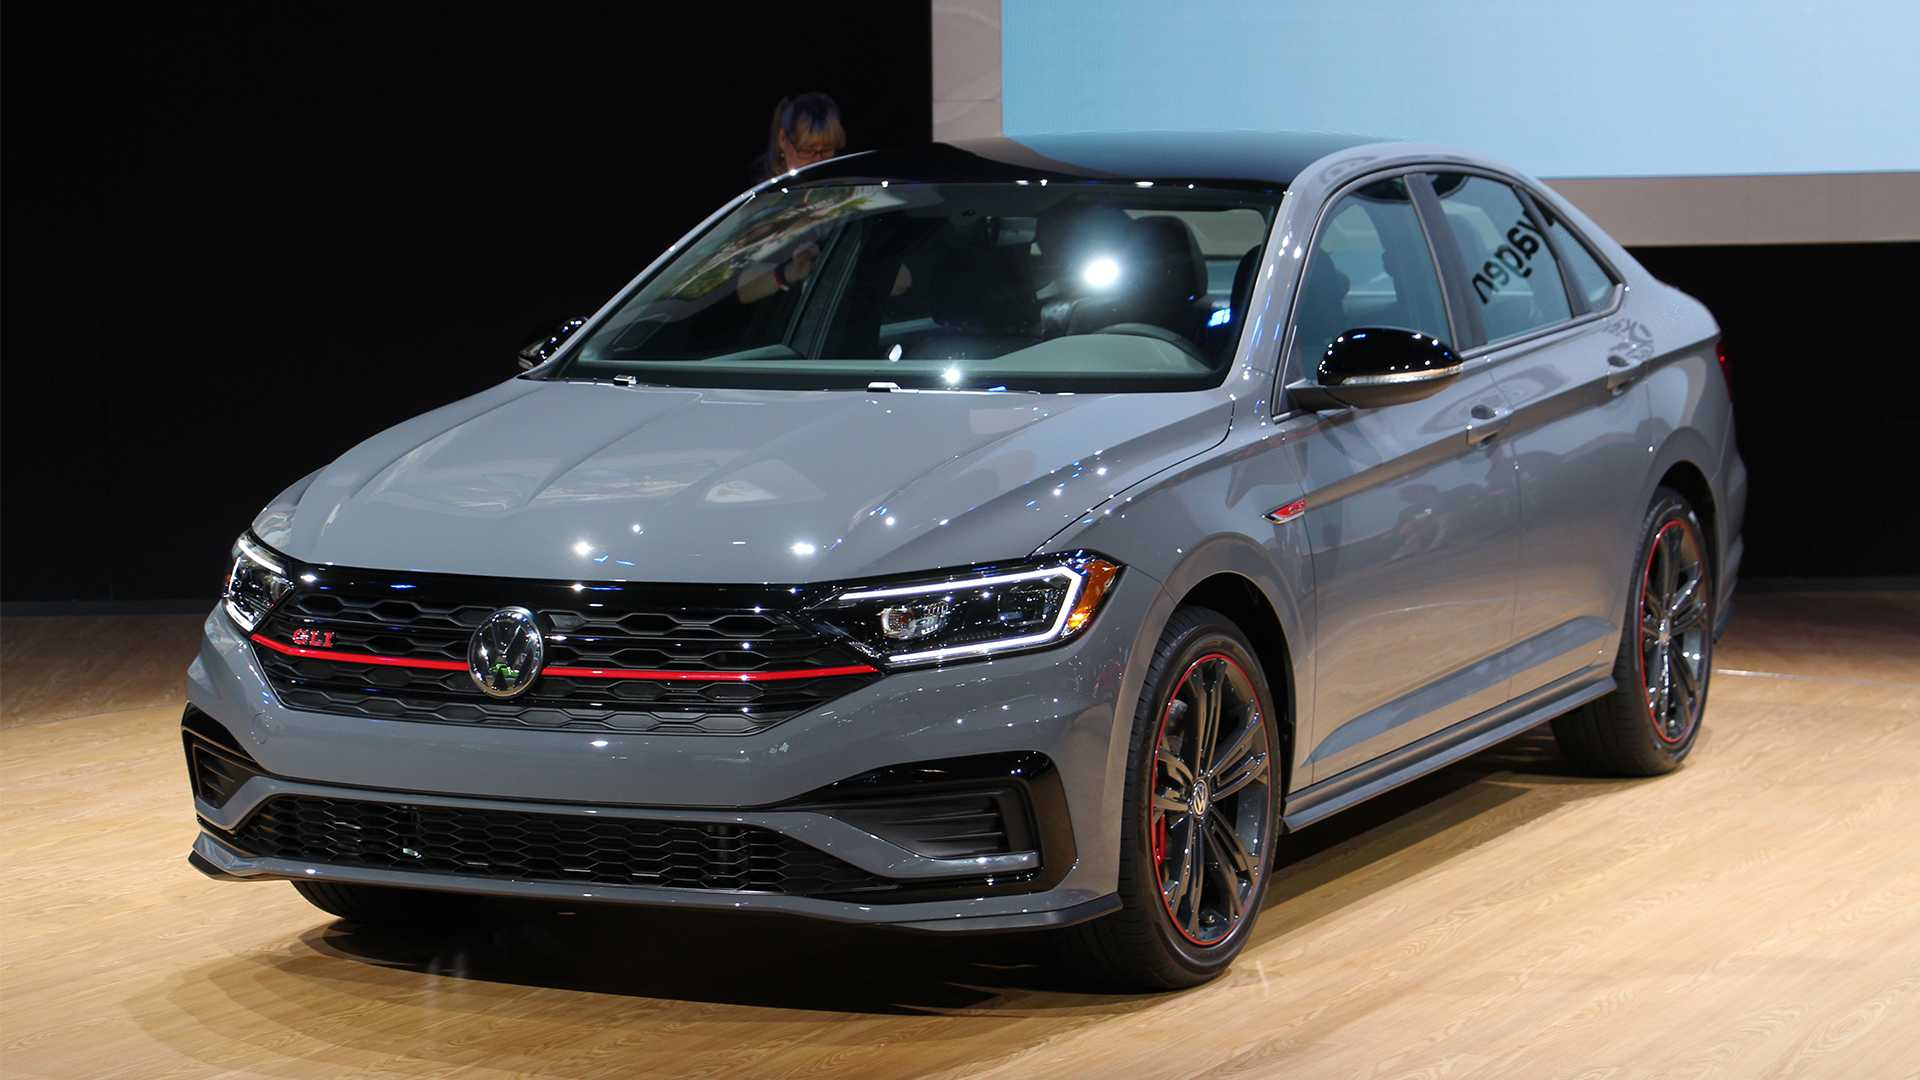 66 New 2019 Volkswagen Jetta Horsepower Concept And Review